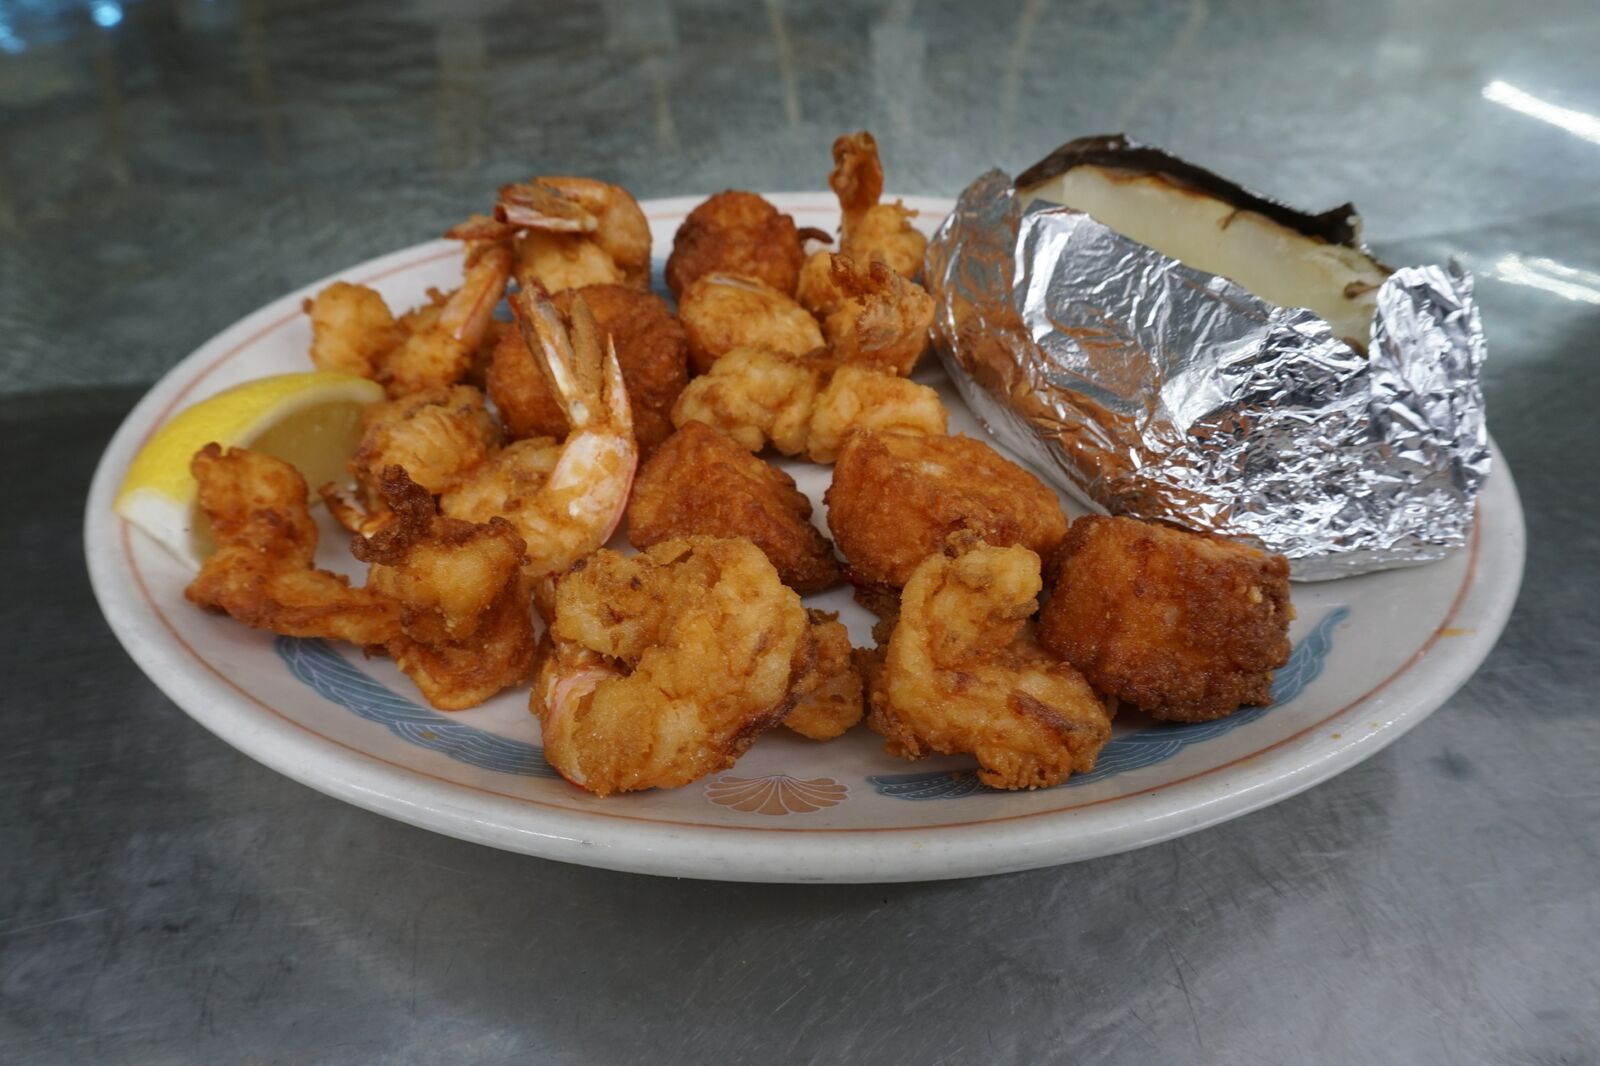 Plump and sweet sea scallops and fantail shrimp, lightly fried with a baked potato.